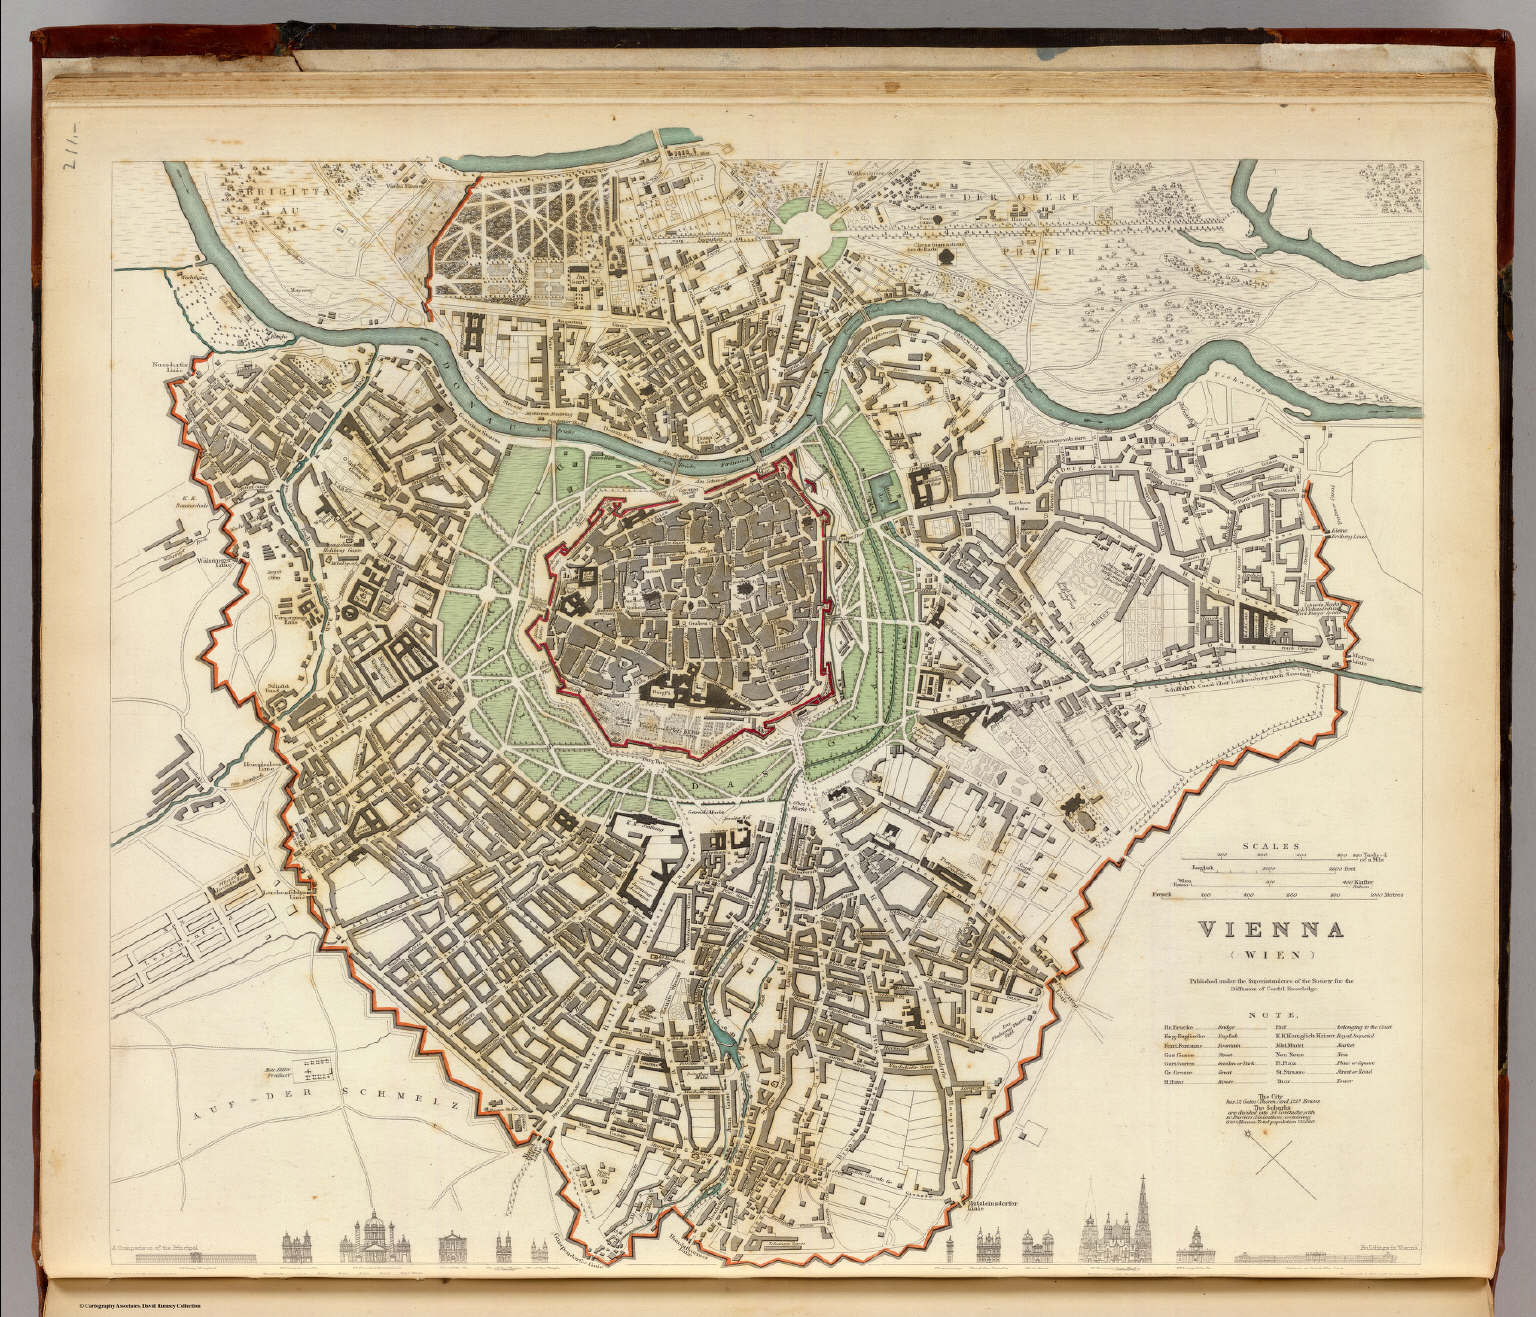 Vienna Wien David Rumsey Historical Map Collection - Buy historical maps